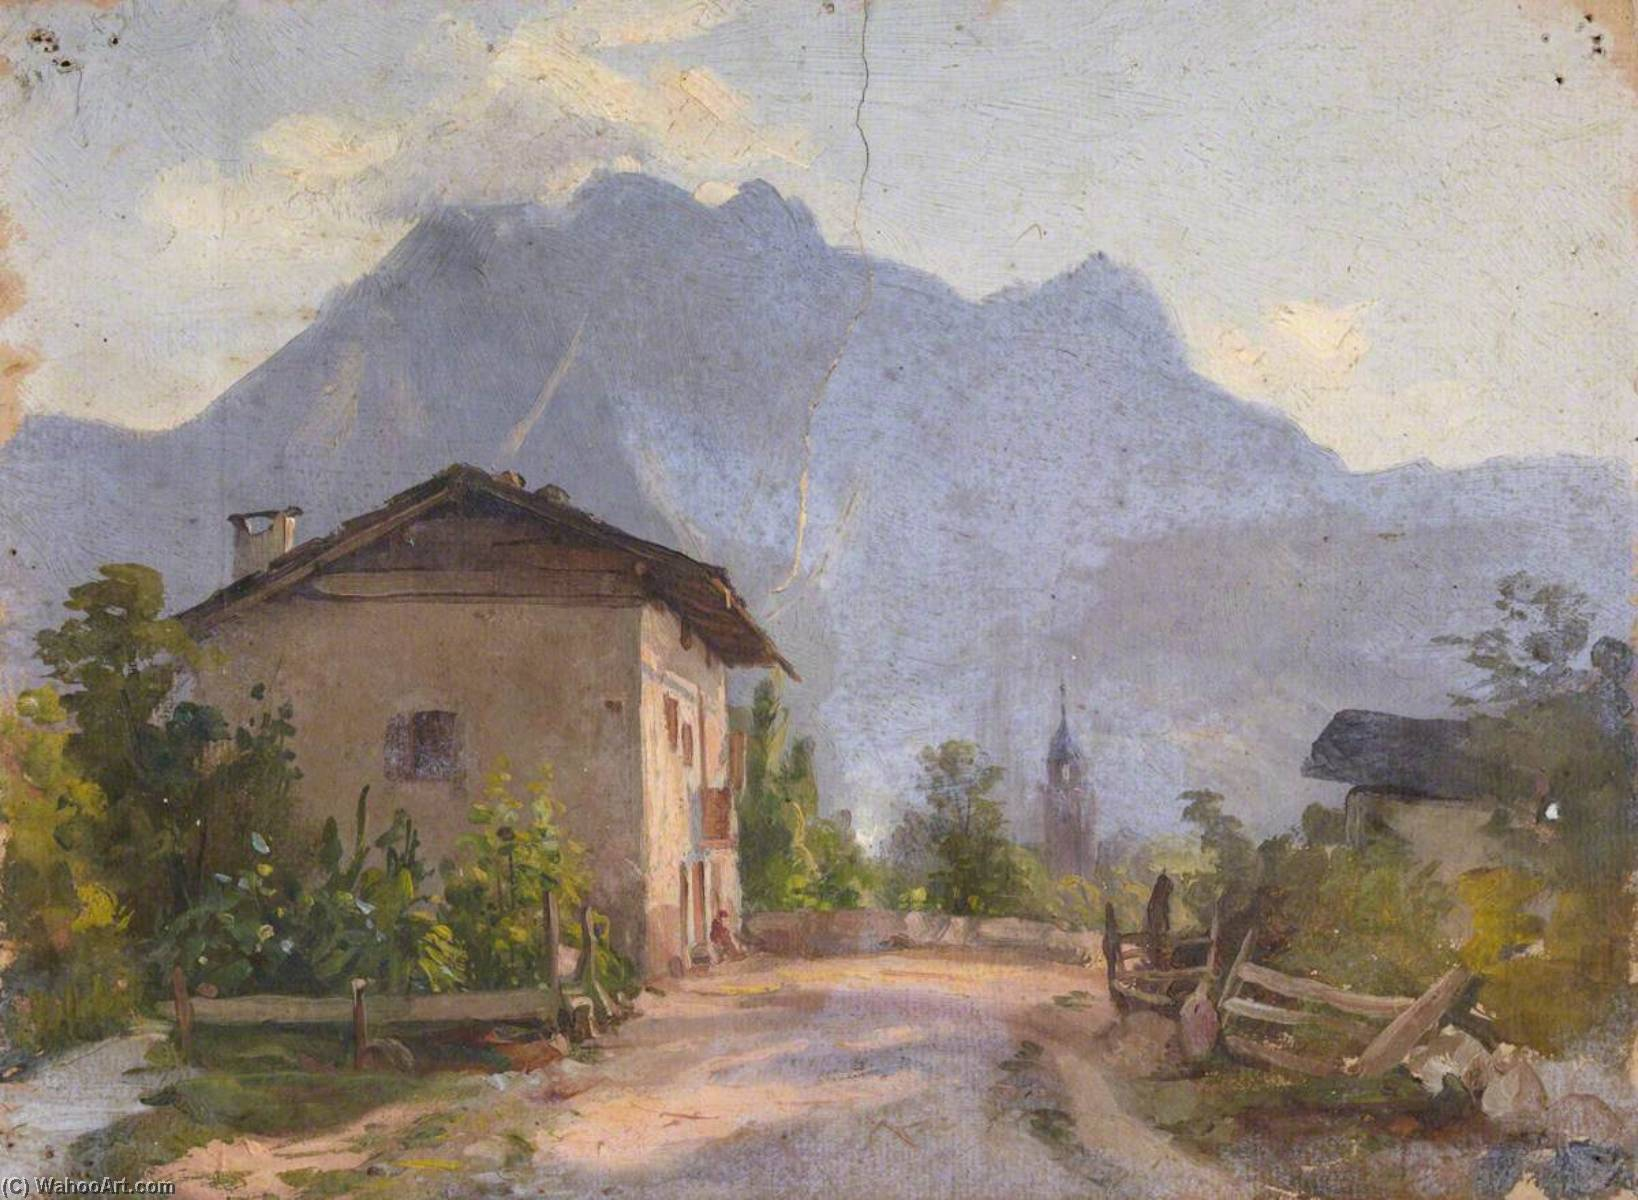 House with a View of Mountains, Oil by Thomas Stuart Smith